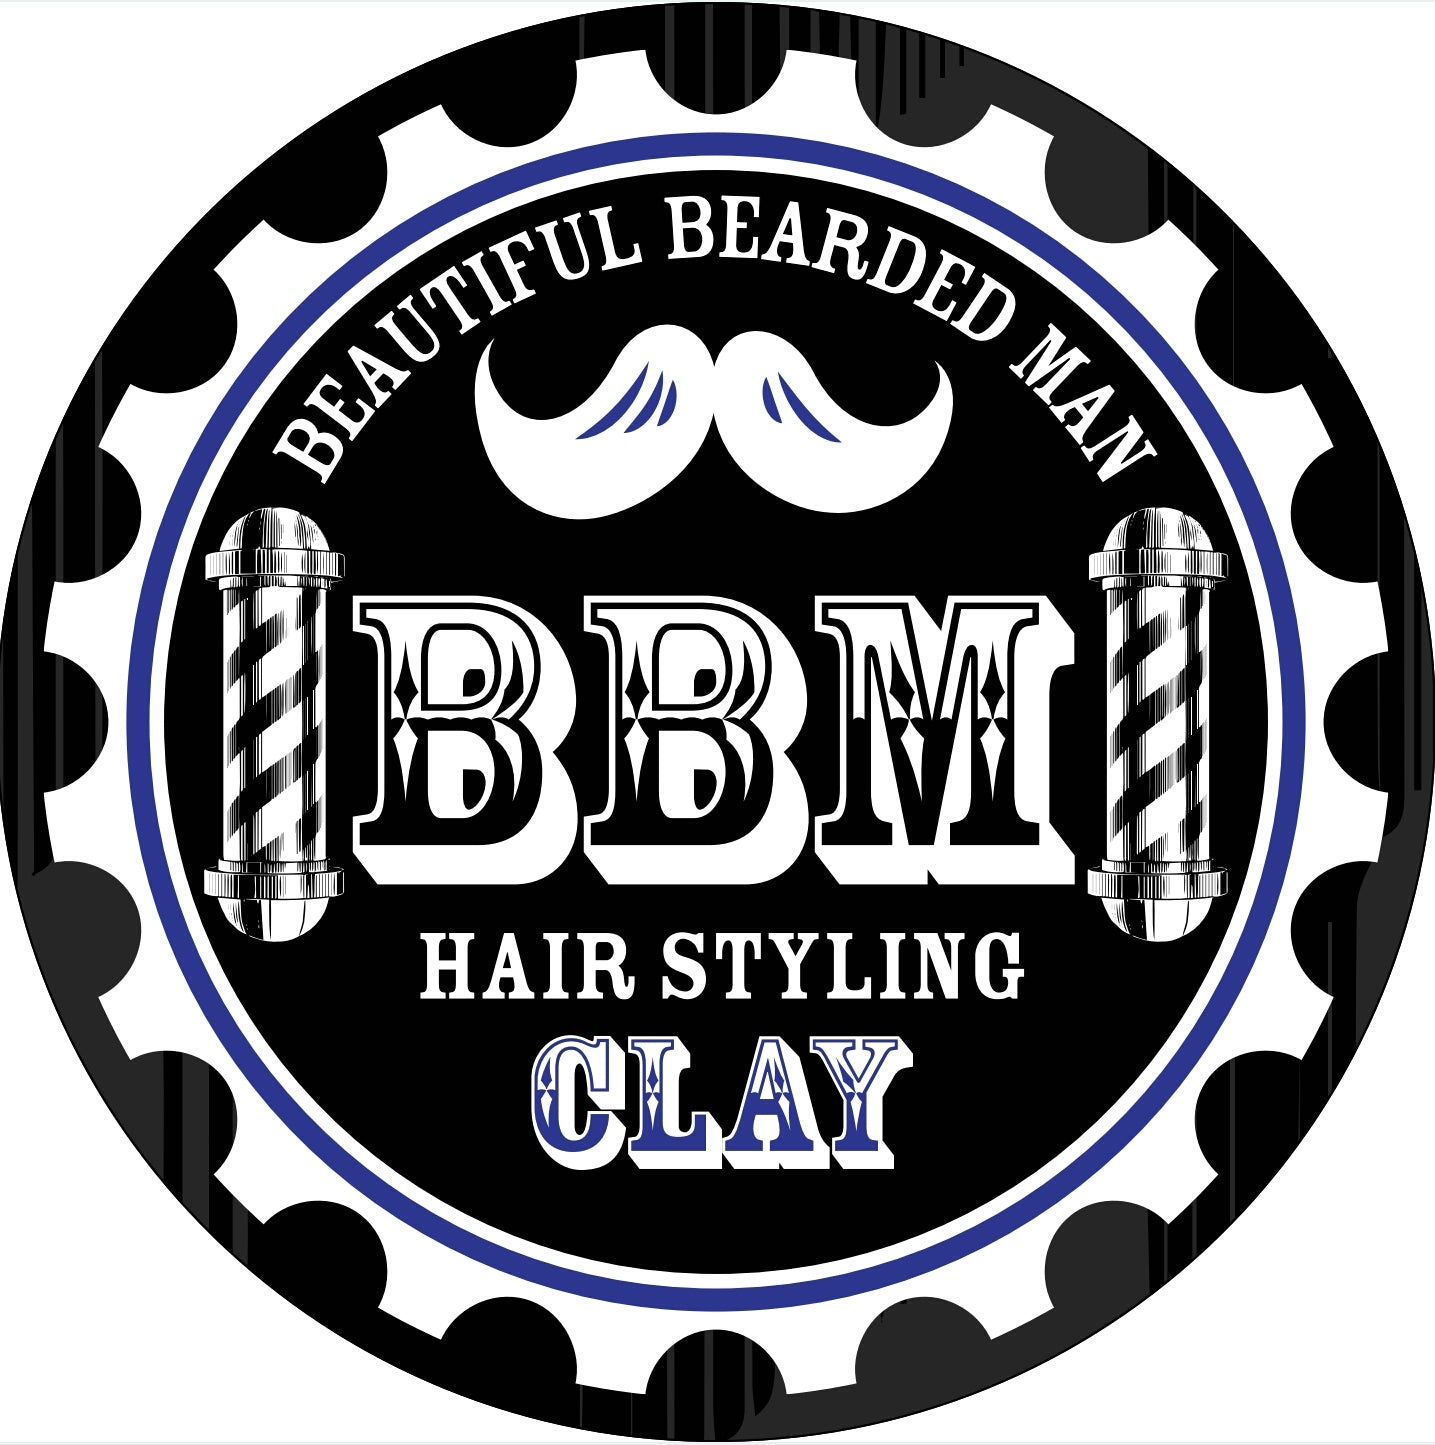 BBM Hair Clay wholesale - BEAUTIFUL BEARDED MAN